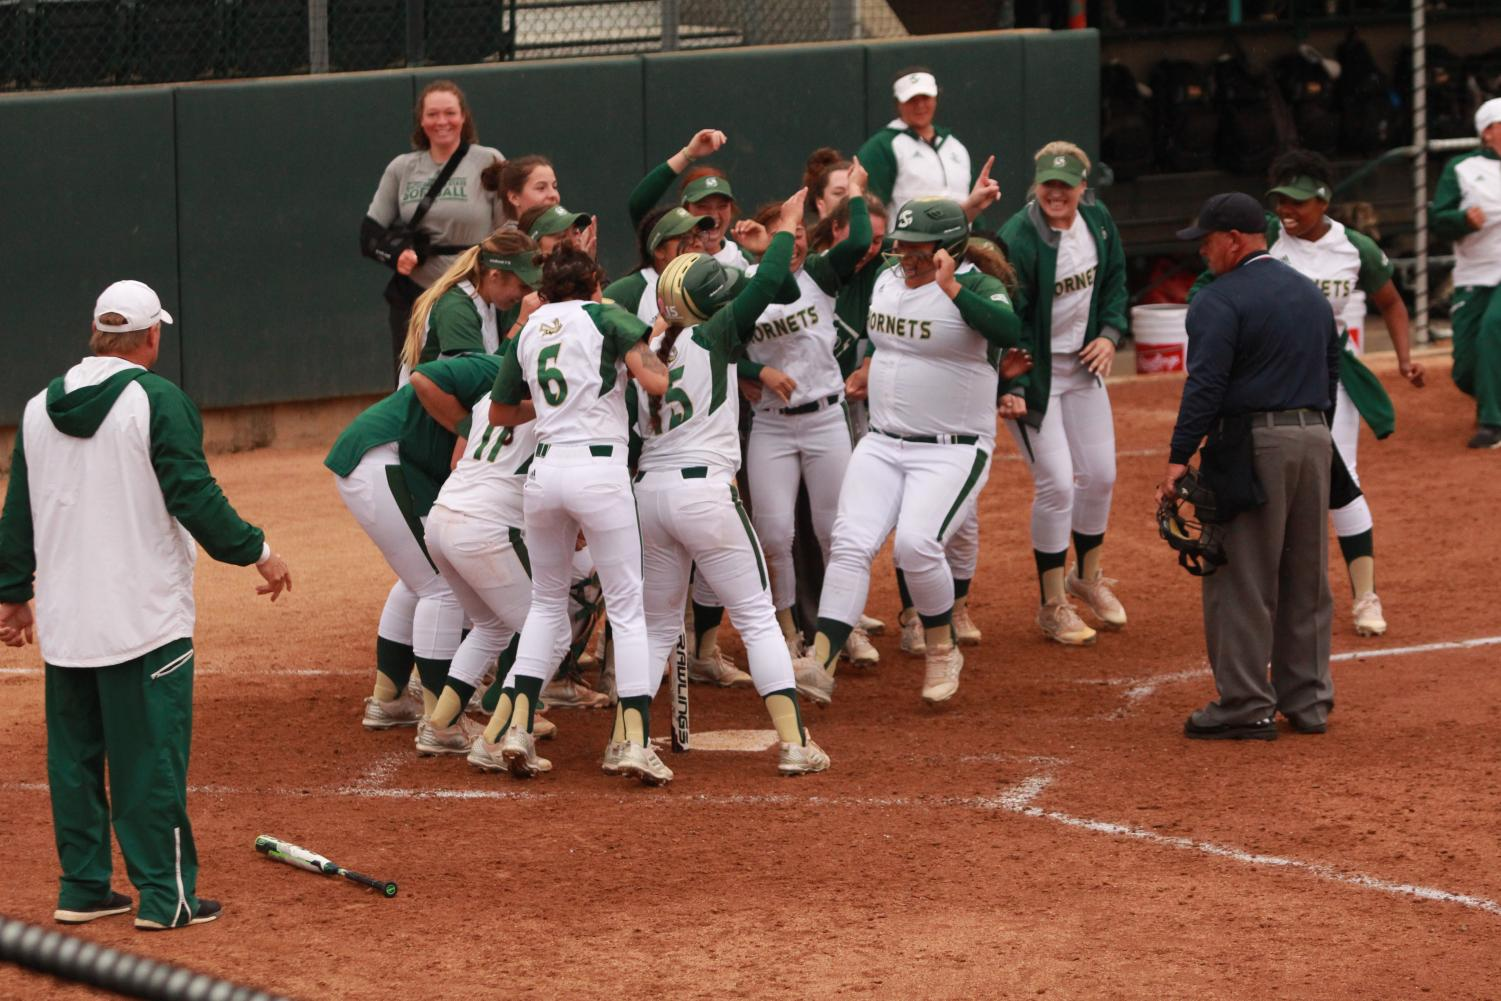 The Sacramento State softball team congratulates sophomore designated player Alexxiss Diaz, middle, after she hit a walk-off home run against Portland State at Shea Stadium on Thursday, April 5, 2018. The Hornets defeated the Vikings 1-0 in extra (8) innings.